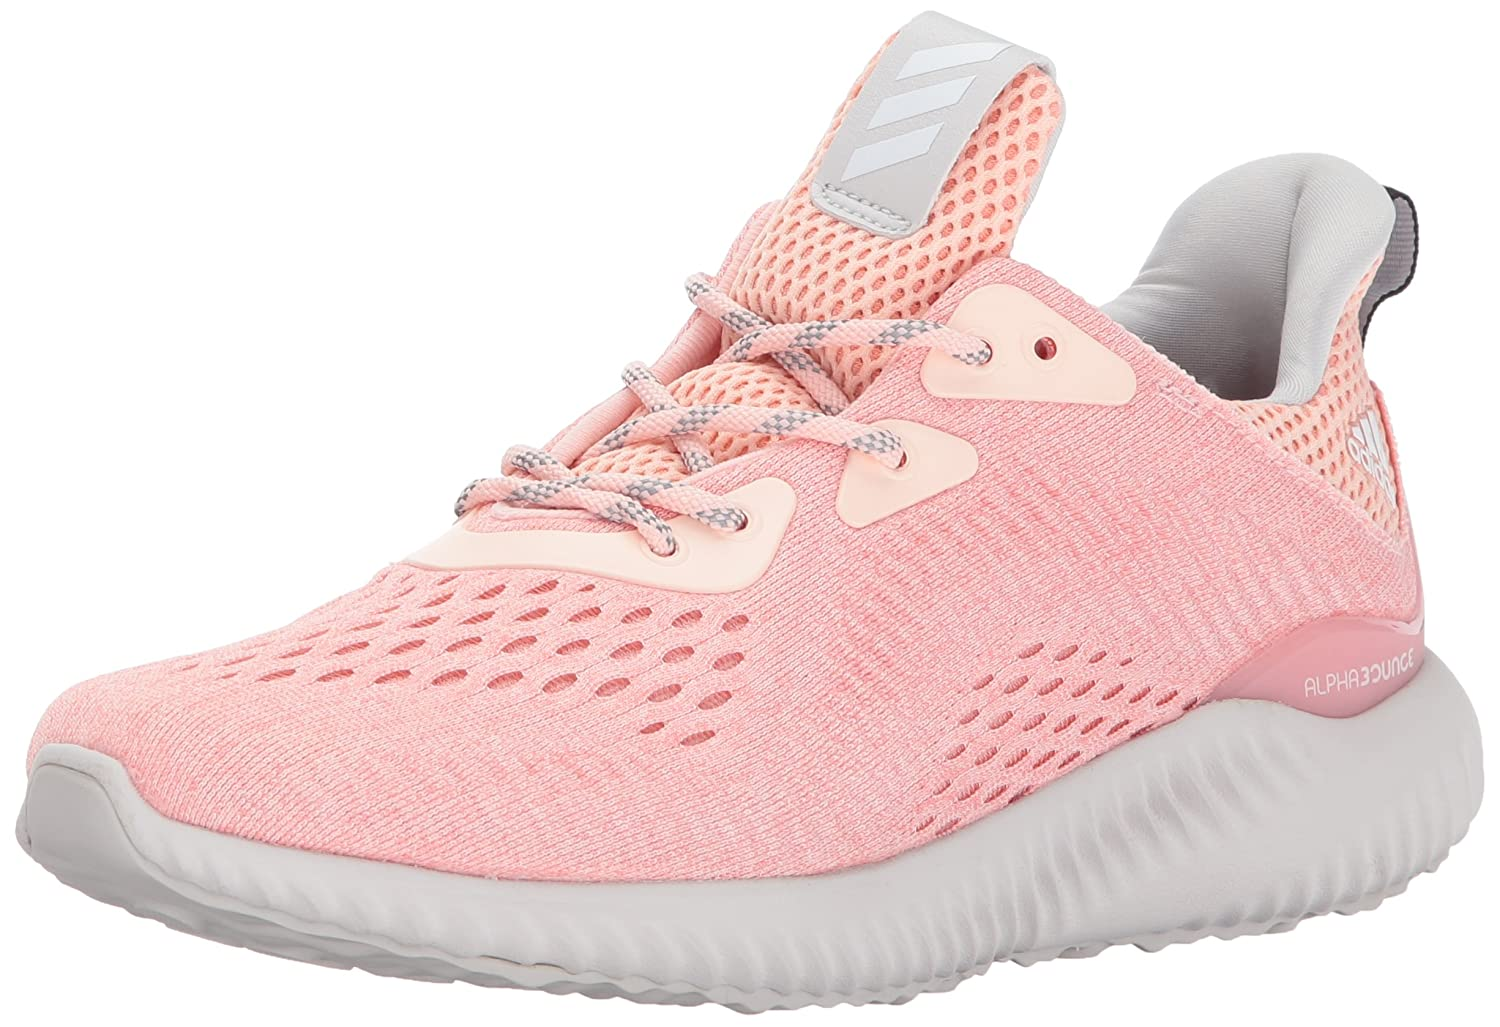 adidas Women's Alphabounce Em W Running Shoe B01MYR3GY0 5 B(M) US|Ice Pink/Trace Pink/Grey One